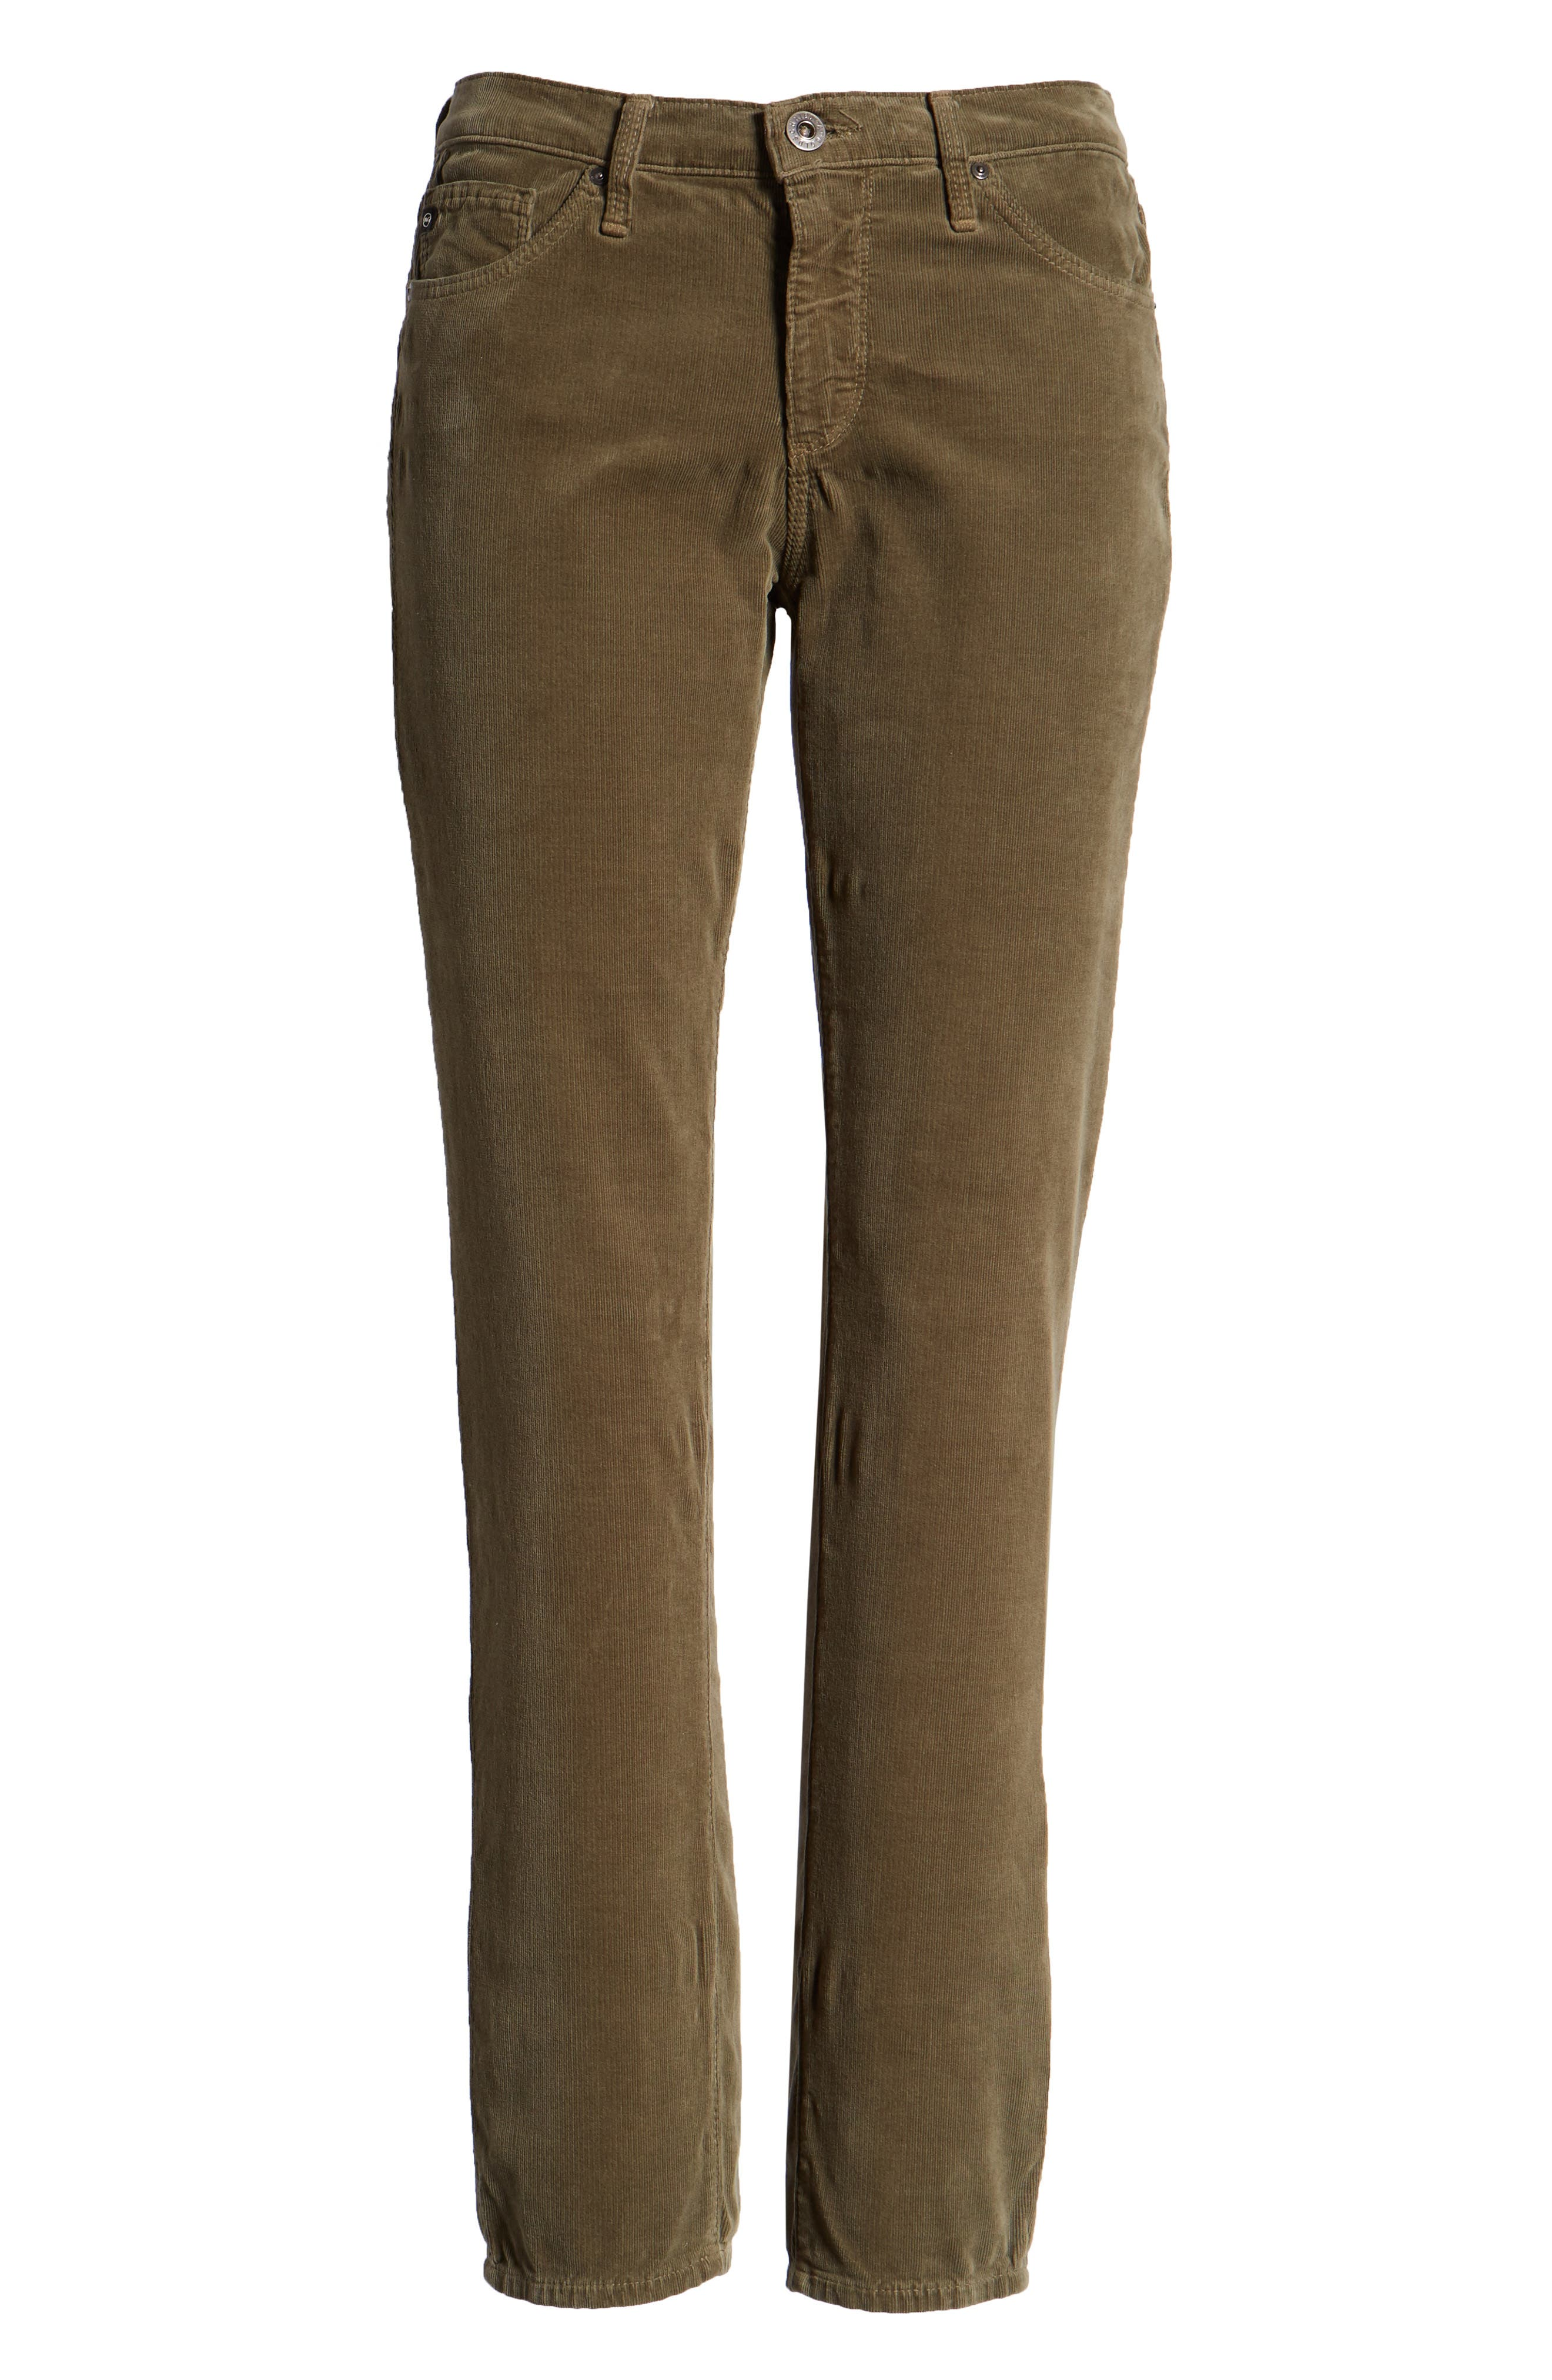 'Prima' Corduroy Skinny Pants,                             Alternate thumbnail 7, color,                             Dried Agave